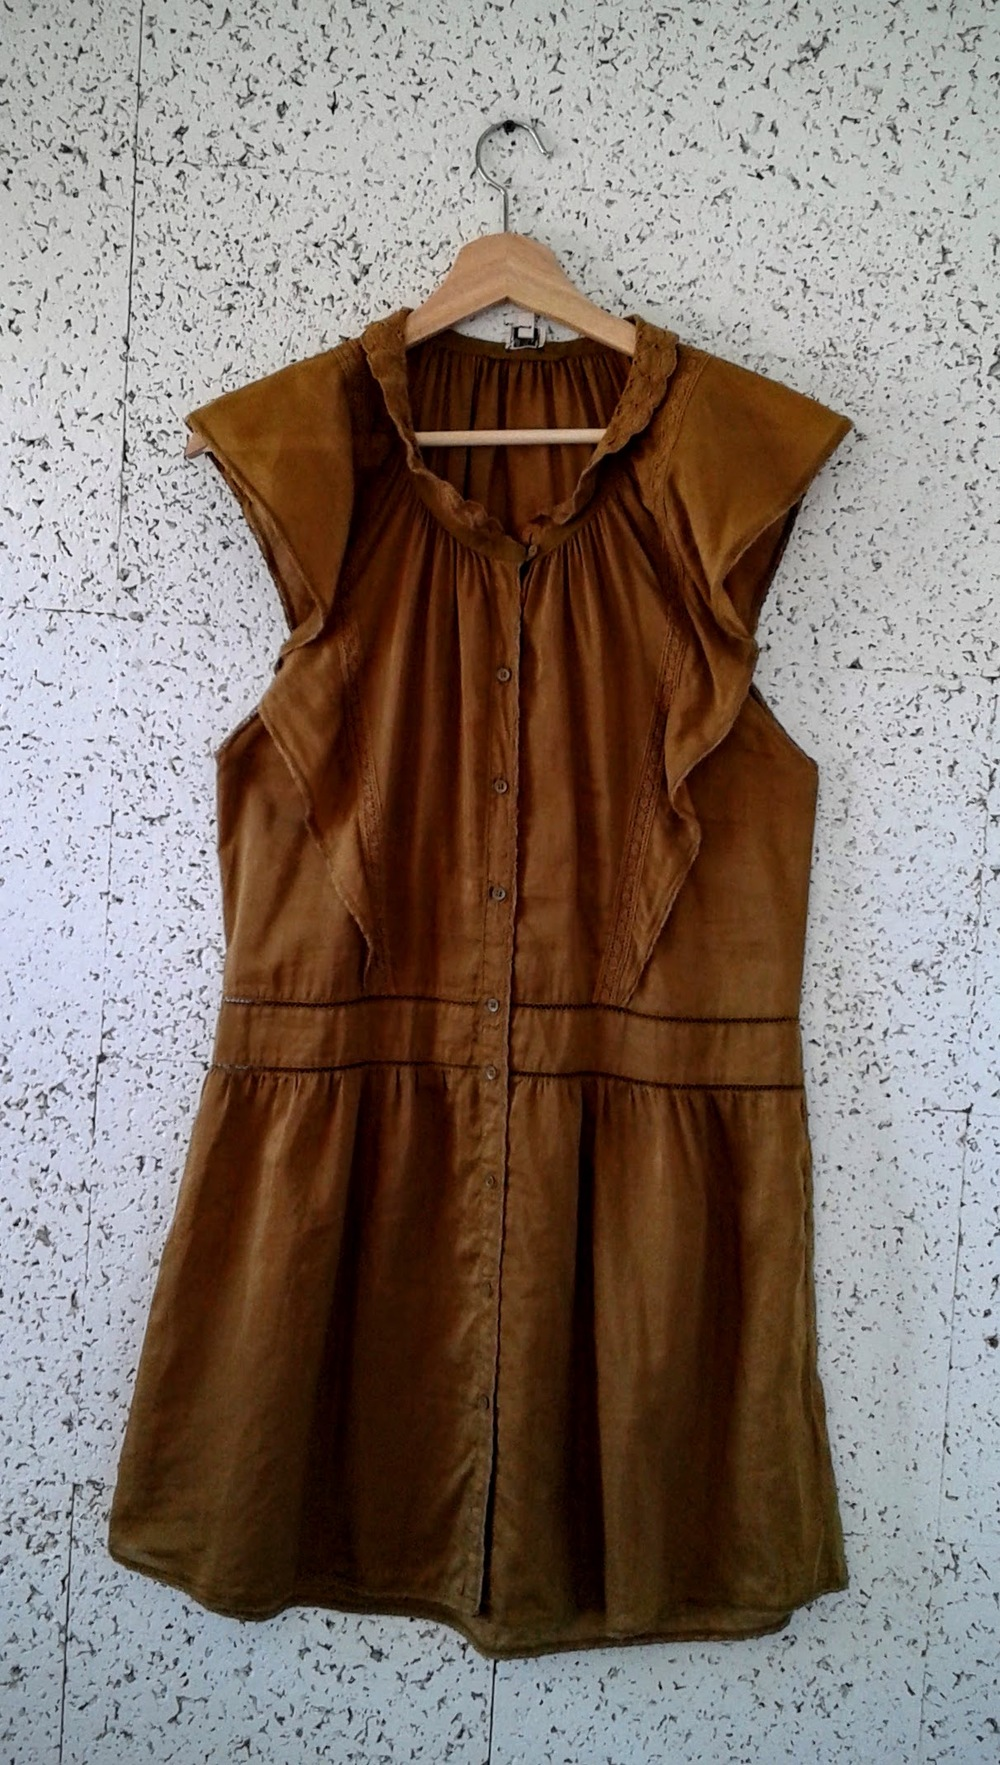 Wilfred dress; Size S, $40